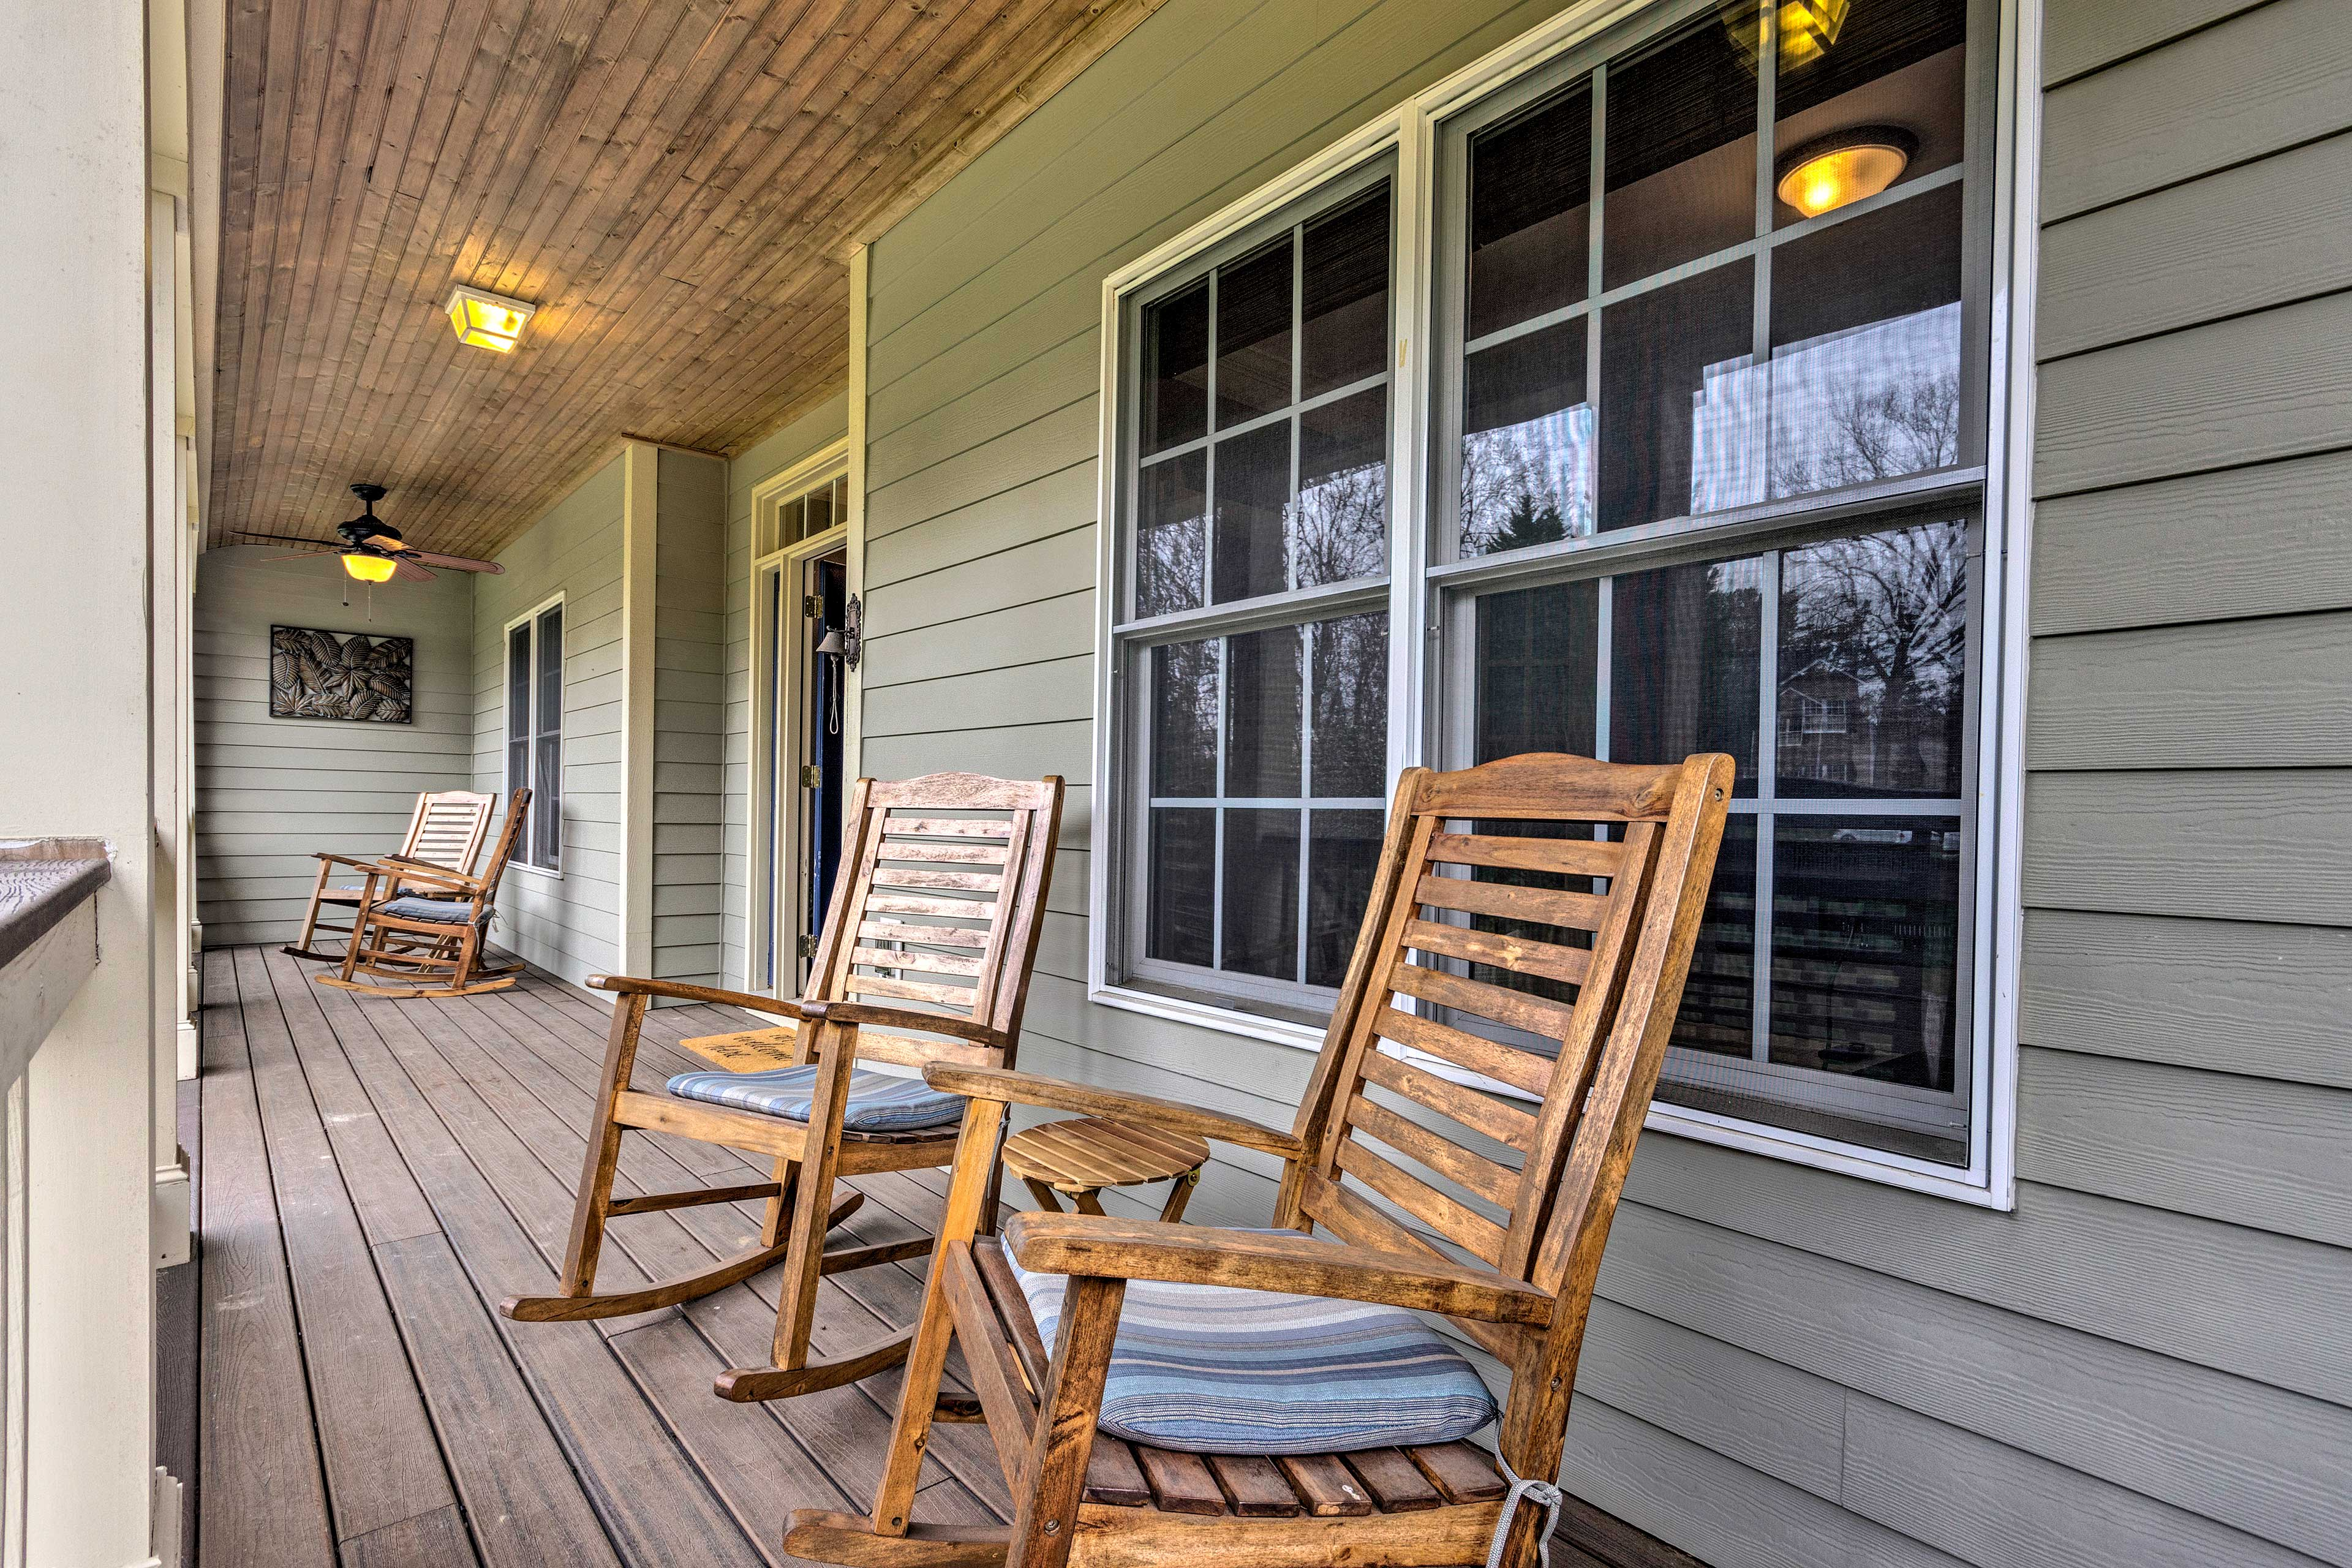 Start each morning with a cup of coffee on the front porch.